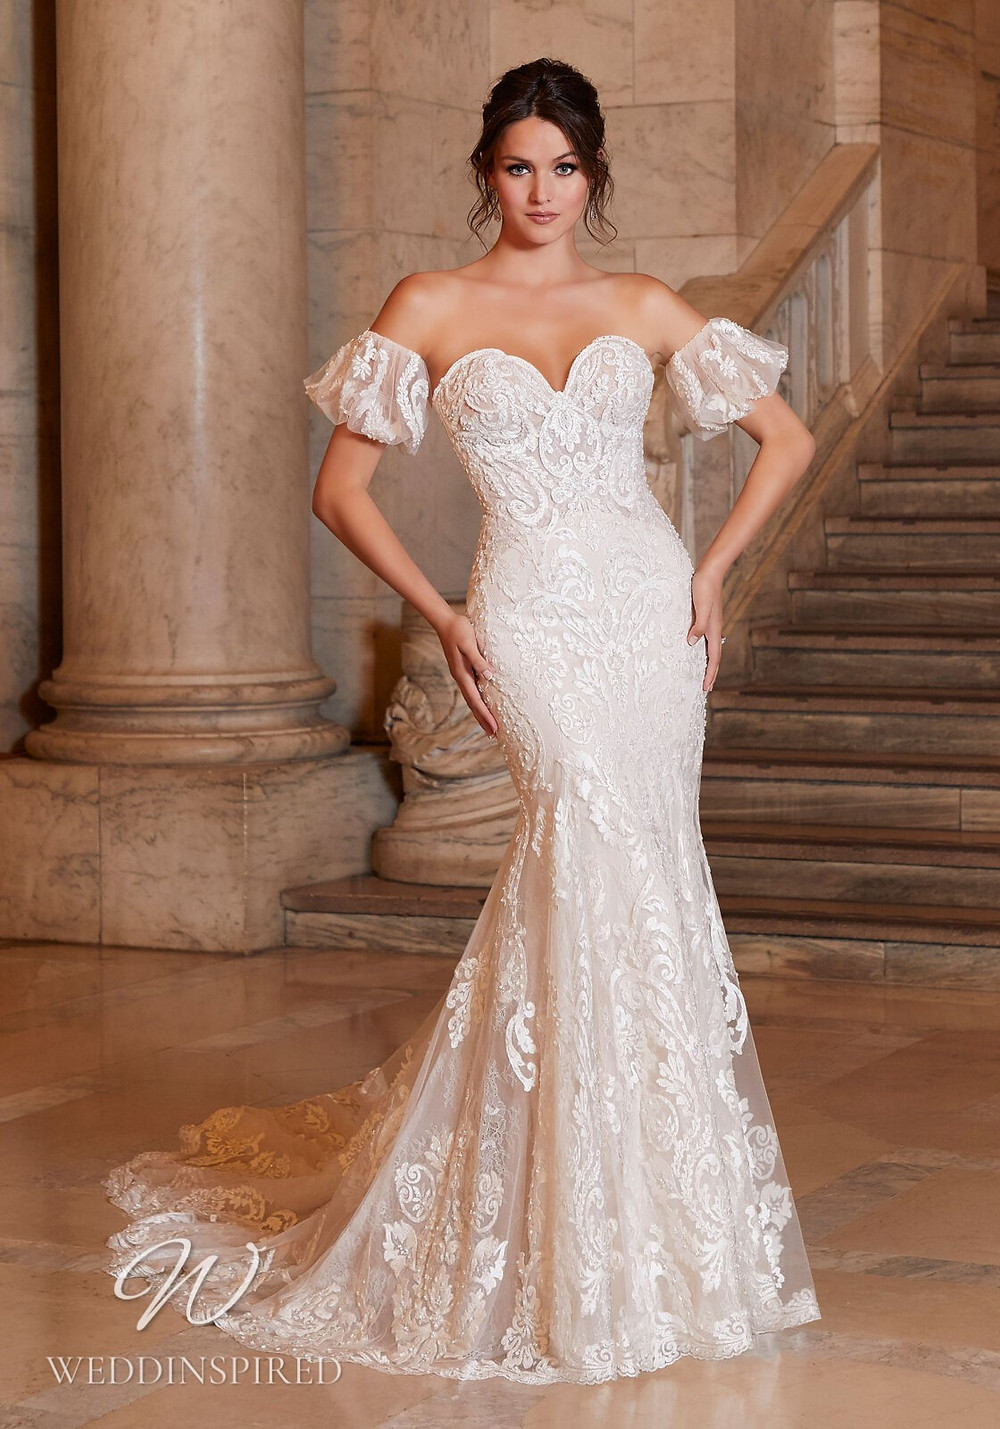 A Madeline Gardner strapless lace mermaid wedding dress